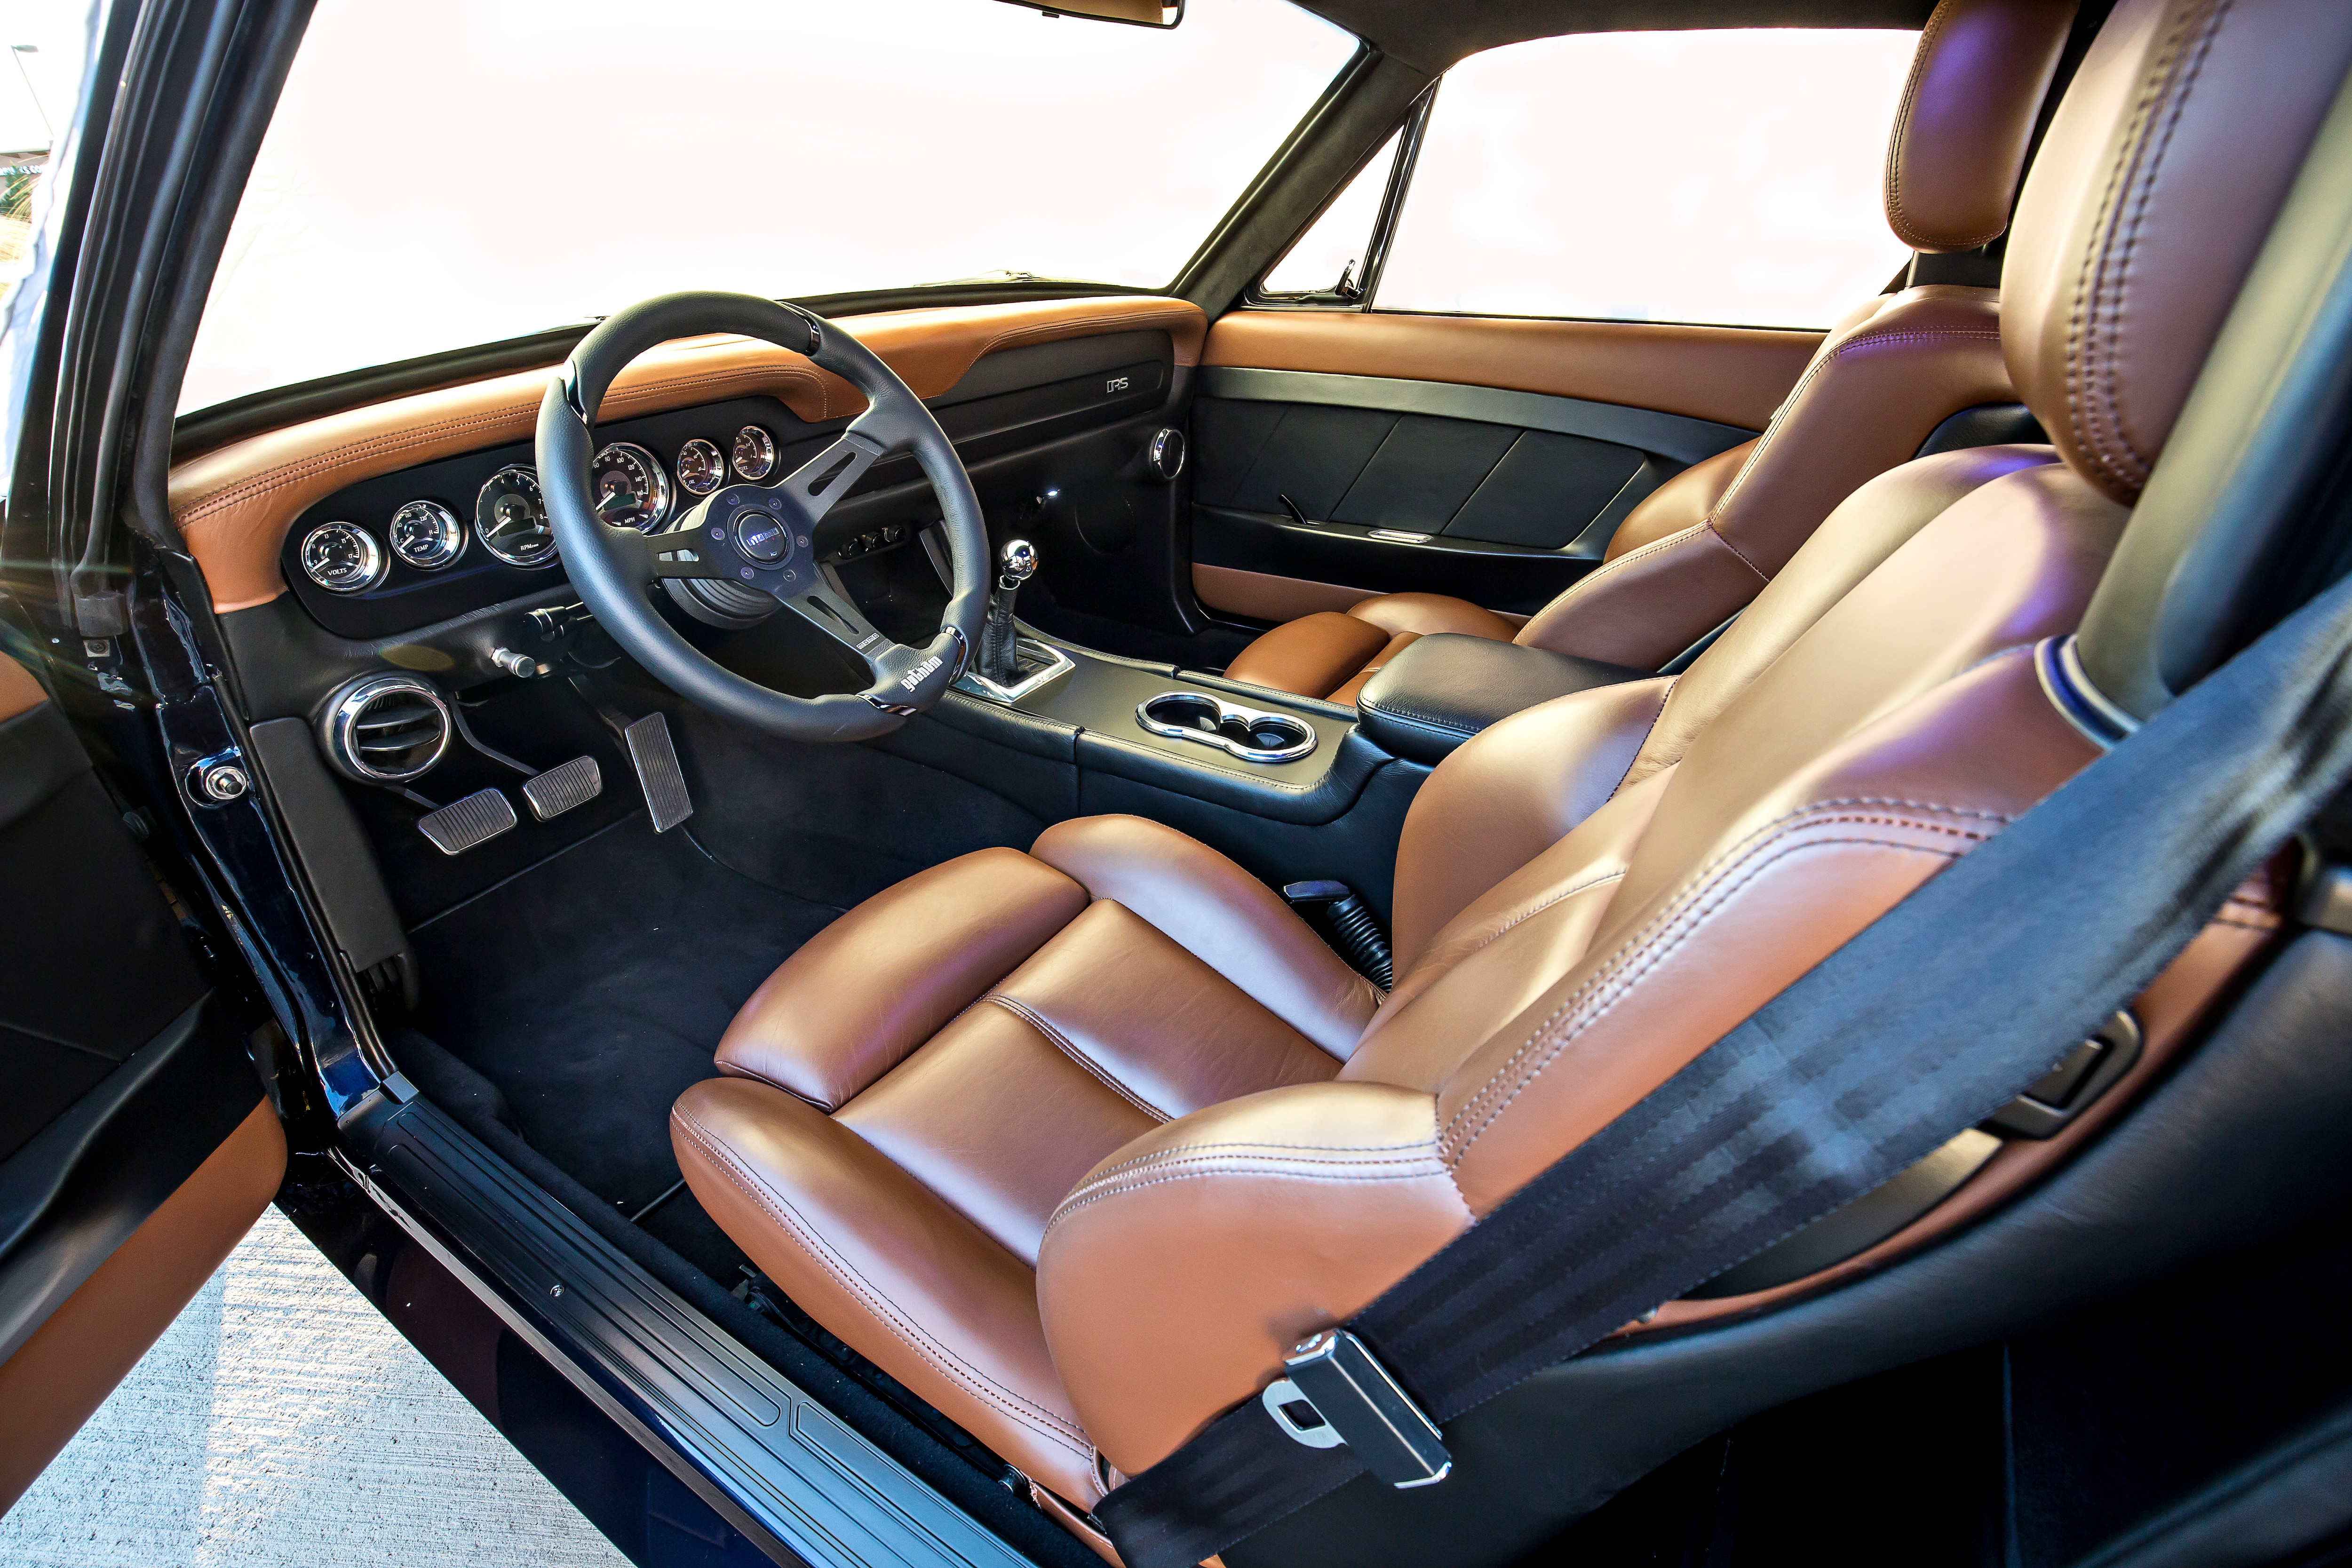 1965 Ford Mustang Interior View